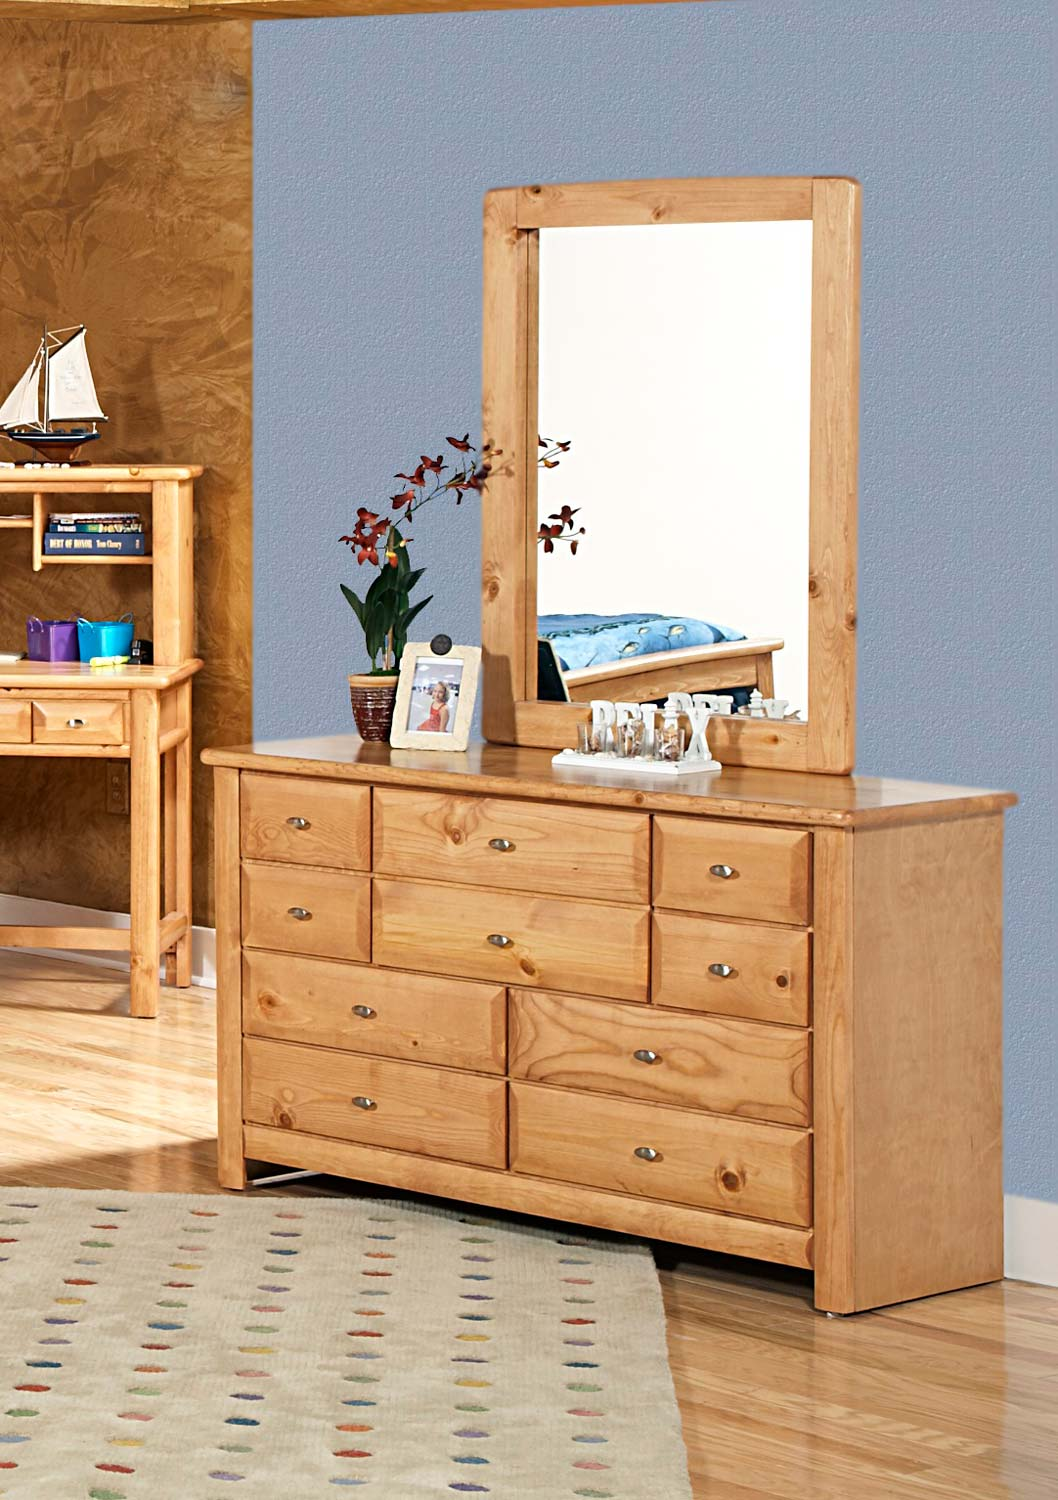 Chelsea Home 3534535-4536-C 9 Drawer Dresser with Mirror - Caramel